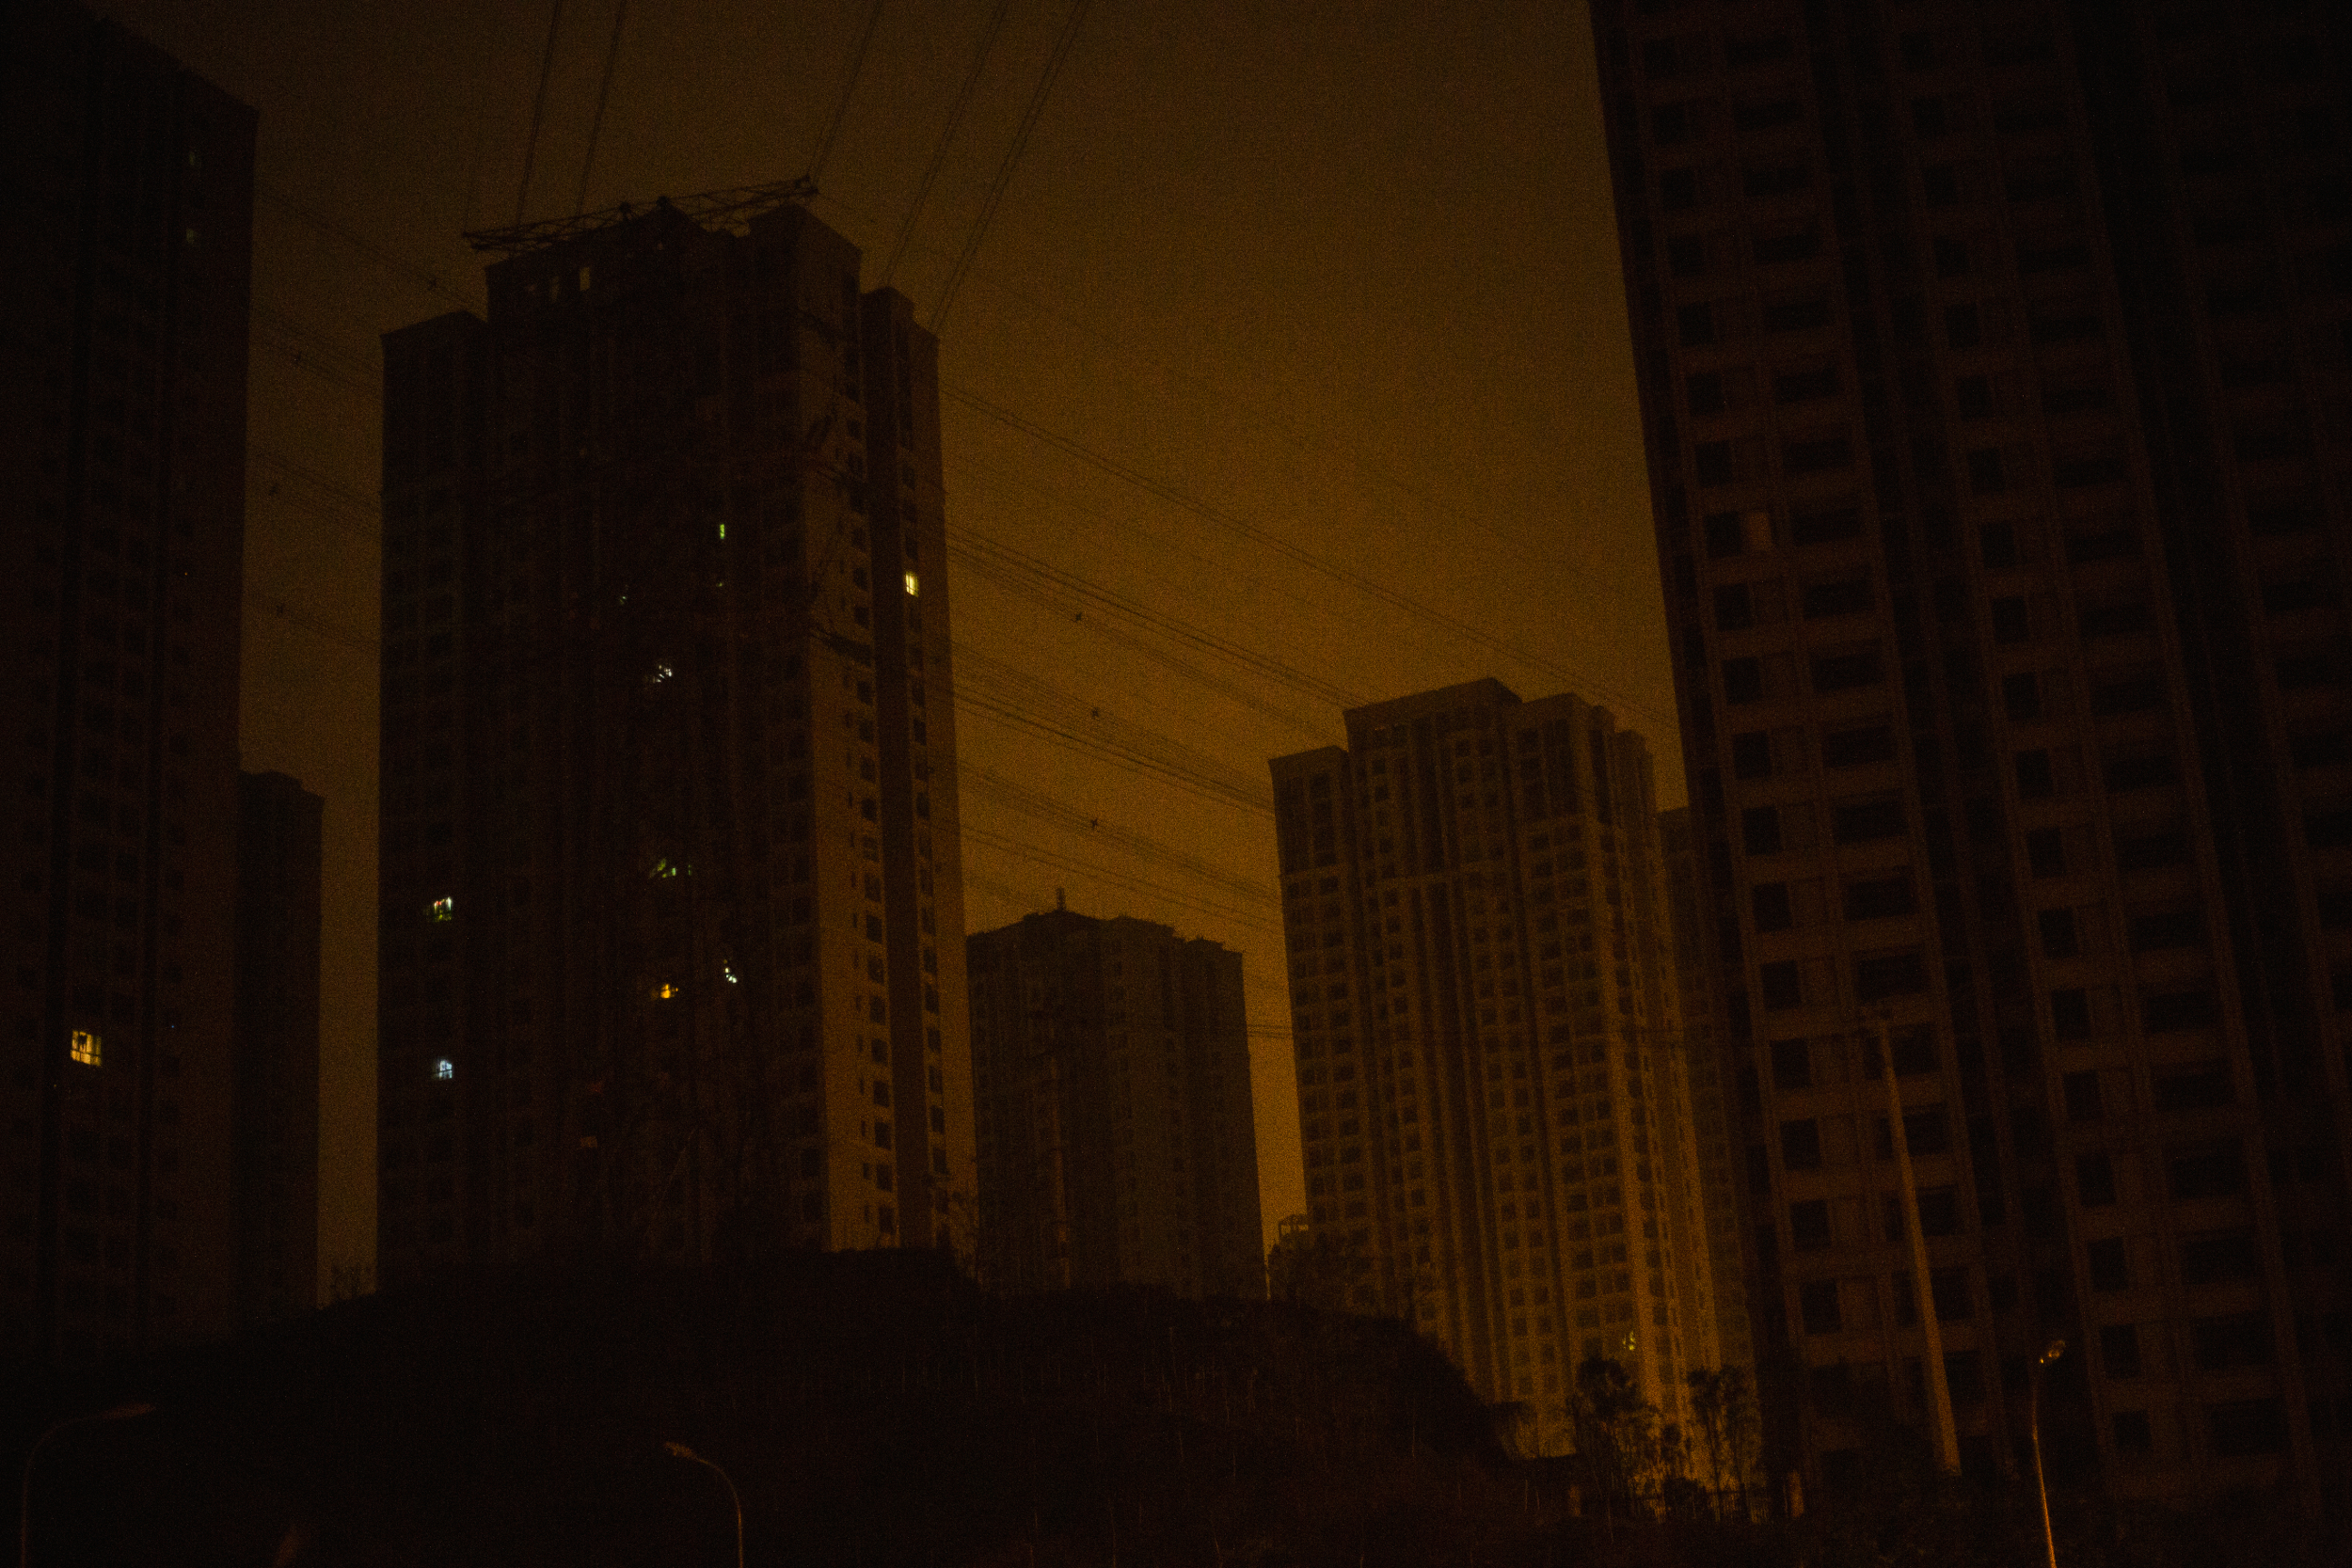 The city is expanding rapidly in a real estate boom that is rapidly changing how and where Chinese society makes its home. Many of the new buildings will be purchased but remain uninhabited for several years.  Chongqing, January 2017